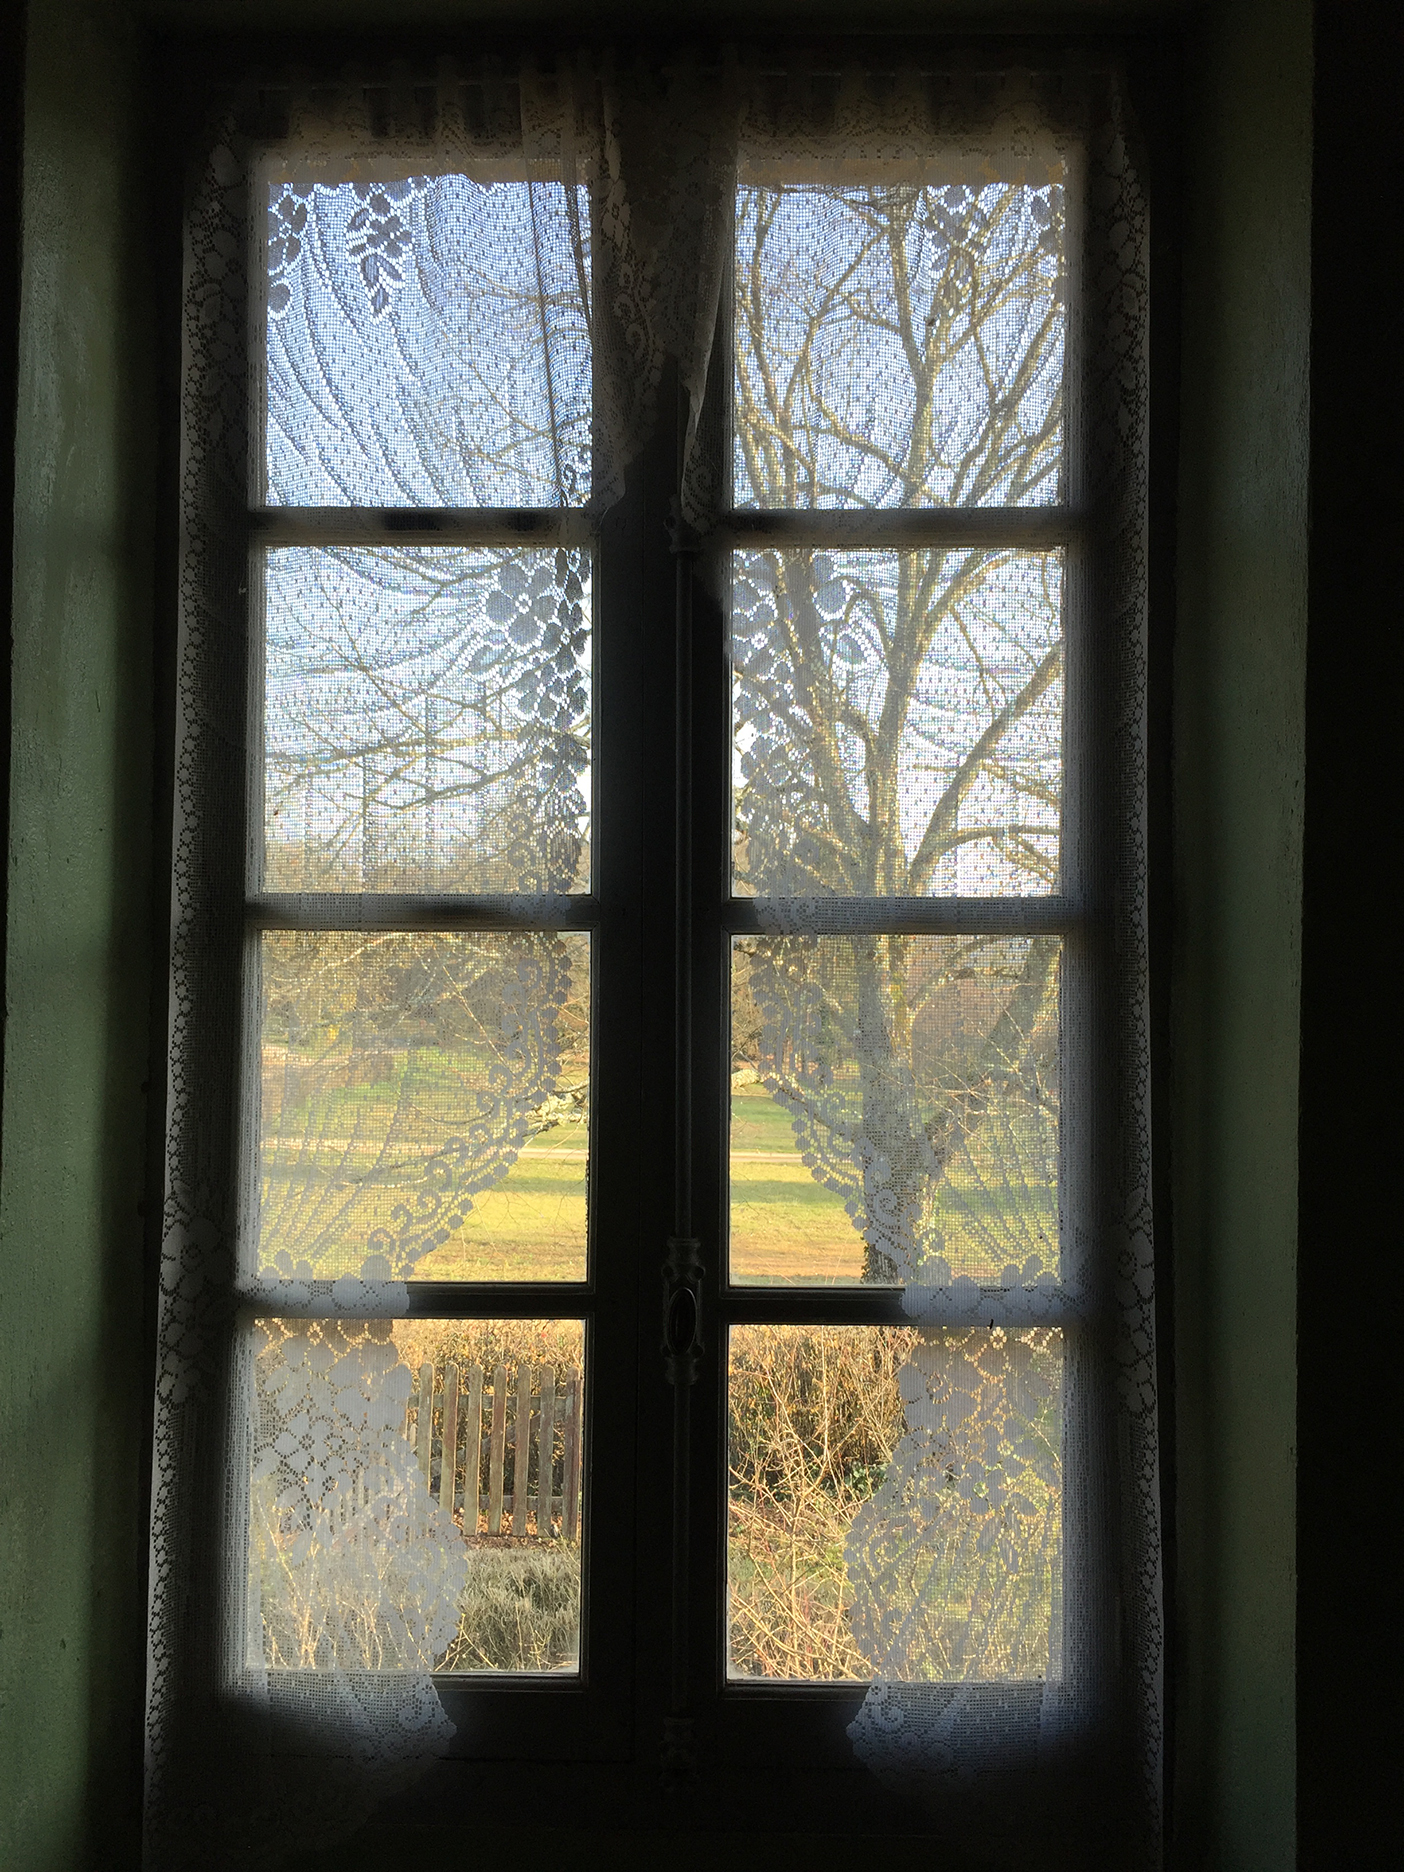 Through the bedroom window